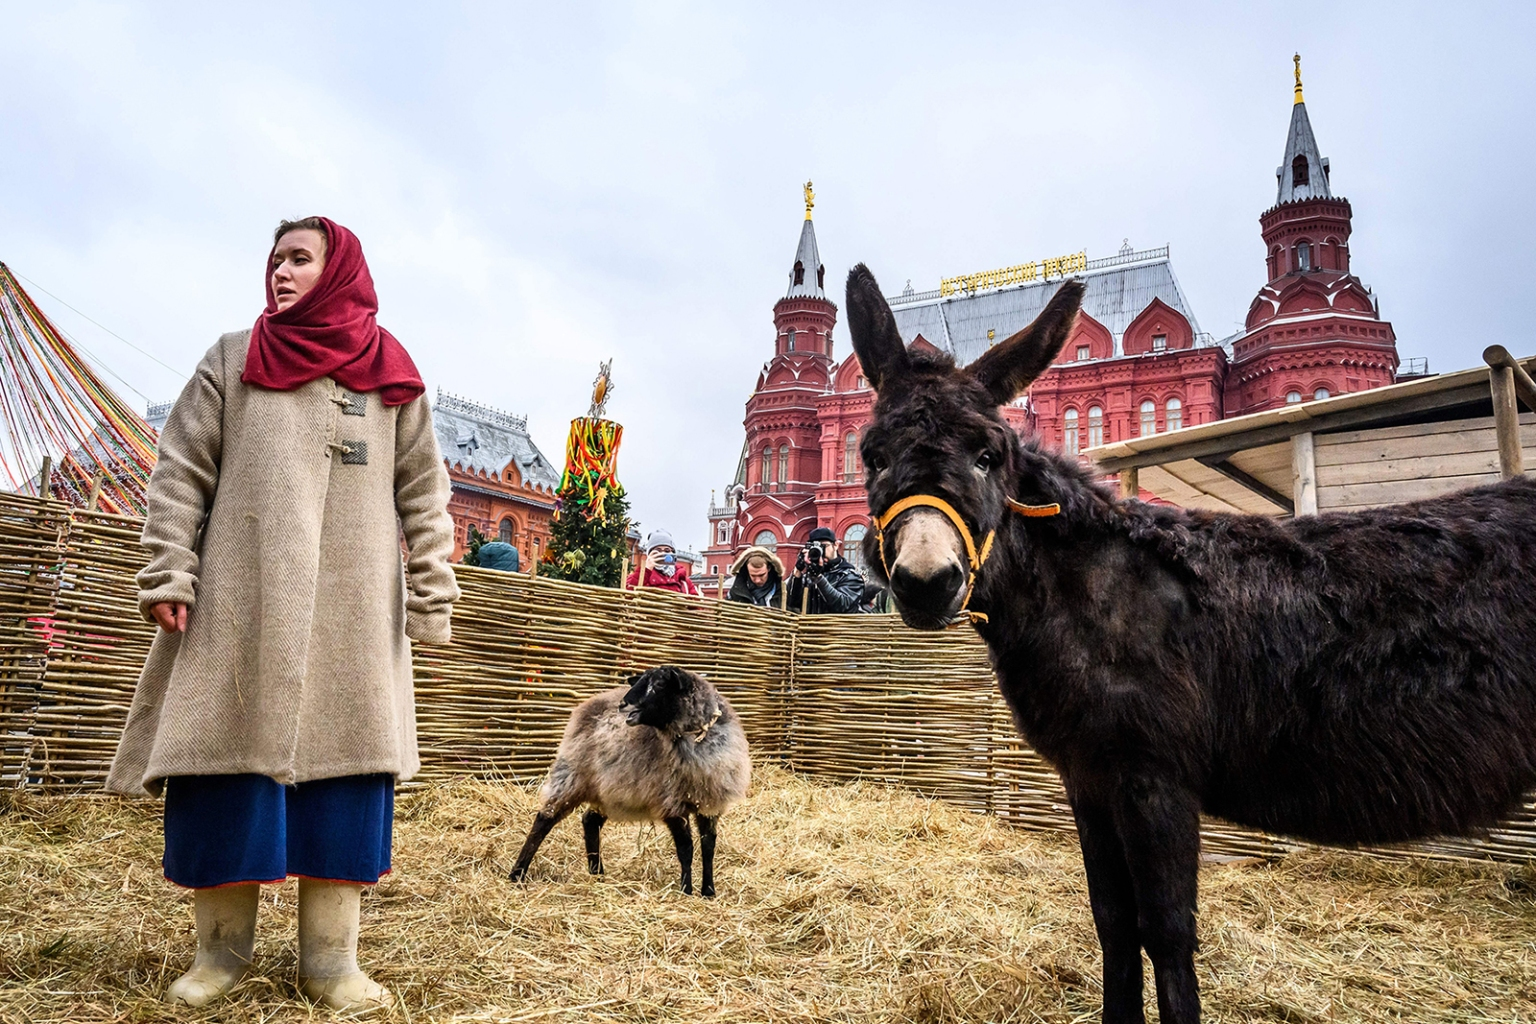 A woman dressed in a traditional costume cares for farm animals in an enclosure set up for the Shrovetide spring festival outside the Kremlin in Moscow on March 1. MLADEN ANTONOV/AFP/Getty Images